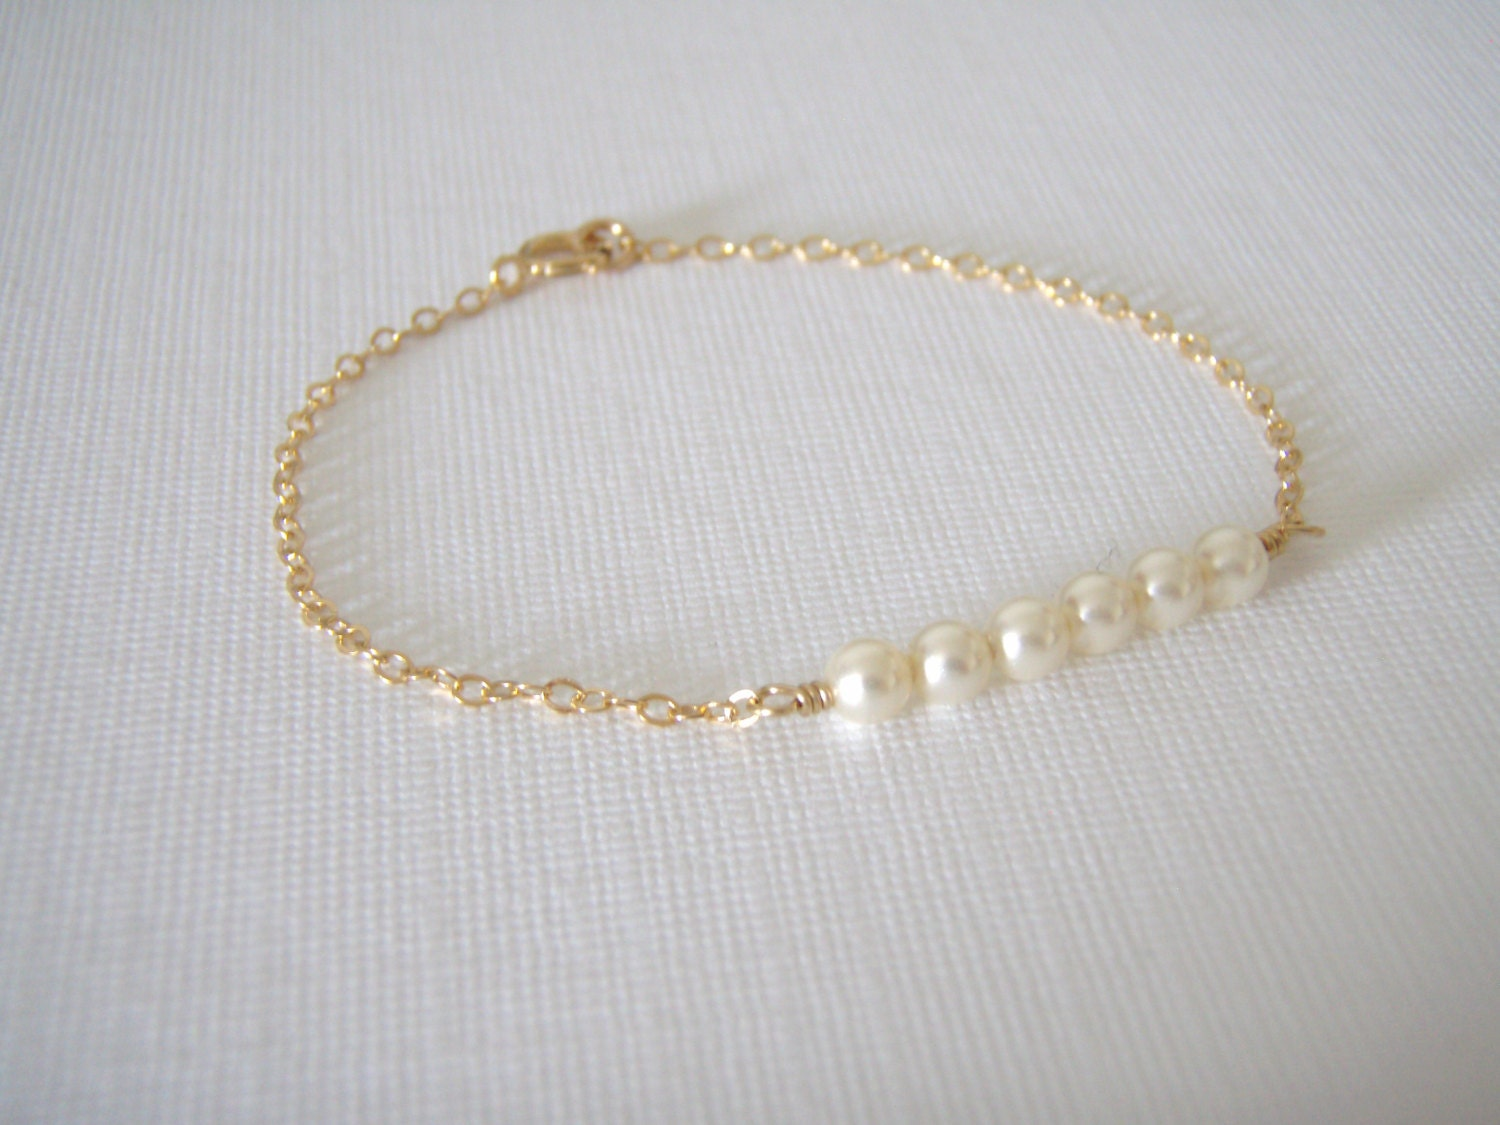 Gold Pearl Bracelet 14k Gold Filled Dainty Petite Pearls